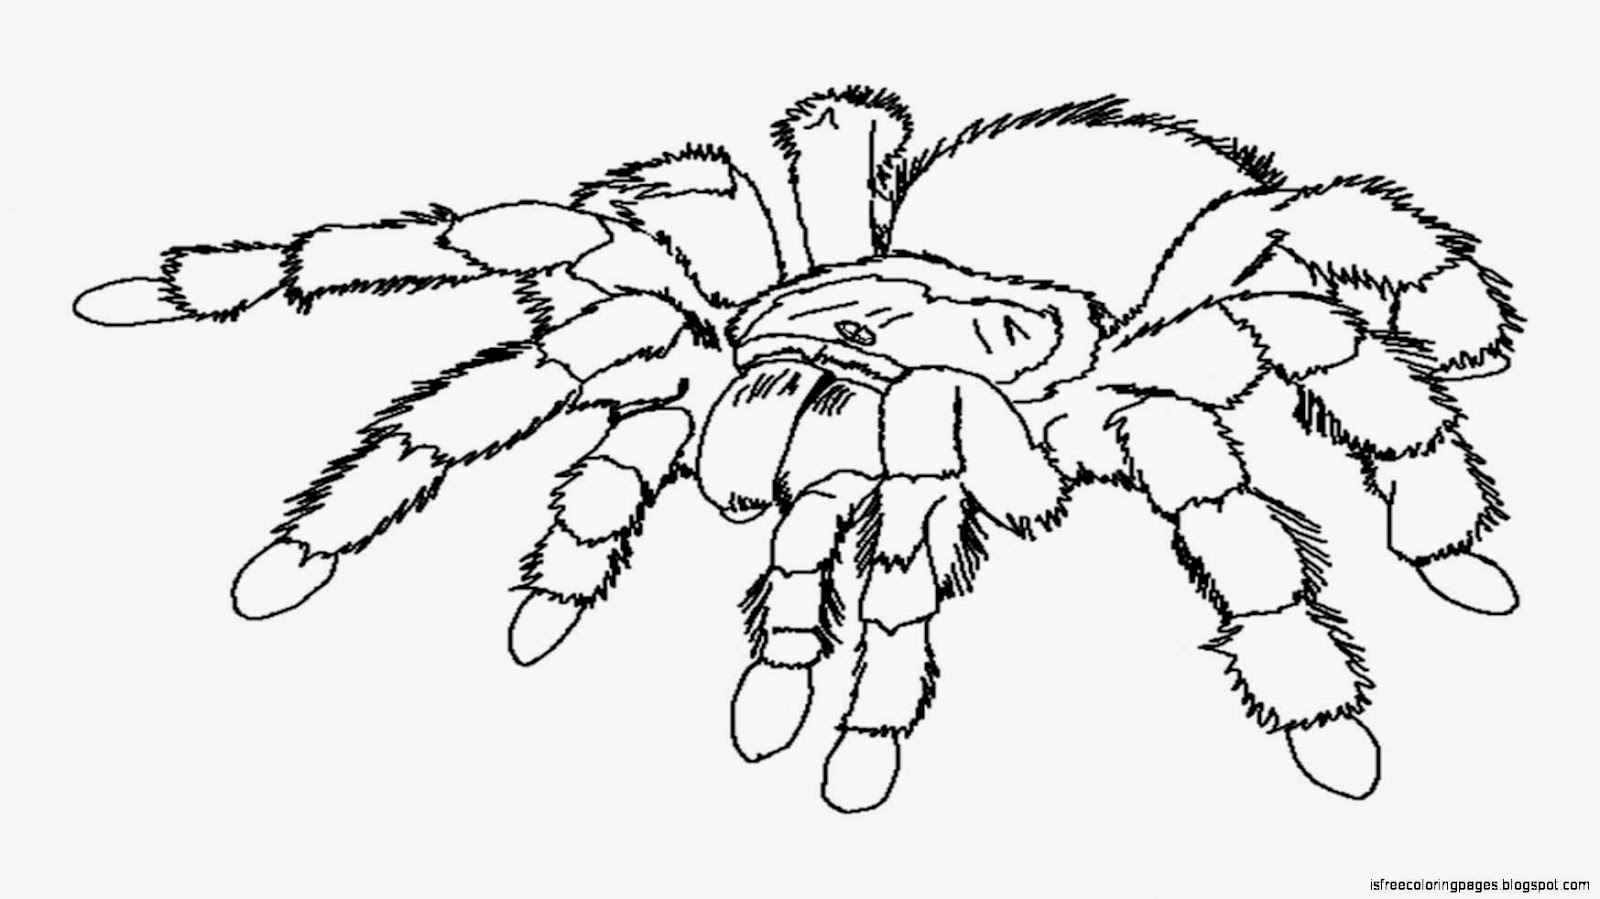 Carnage Coloring Pages To Print Diagrams Wiring Diagram